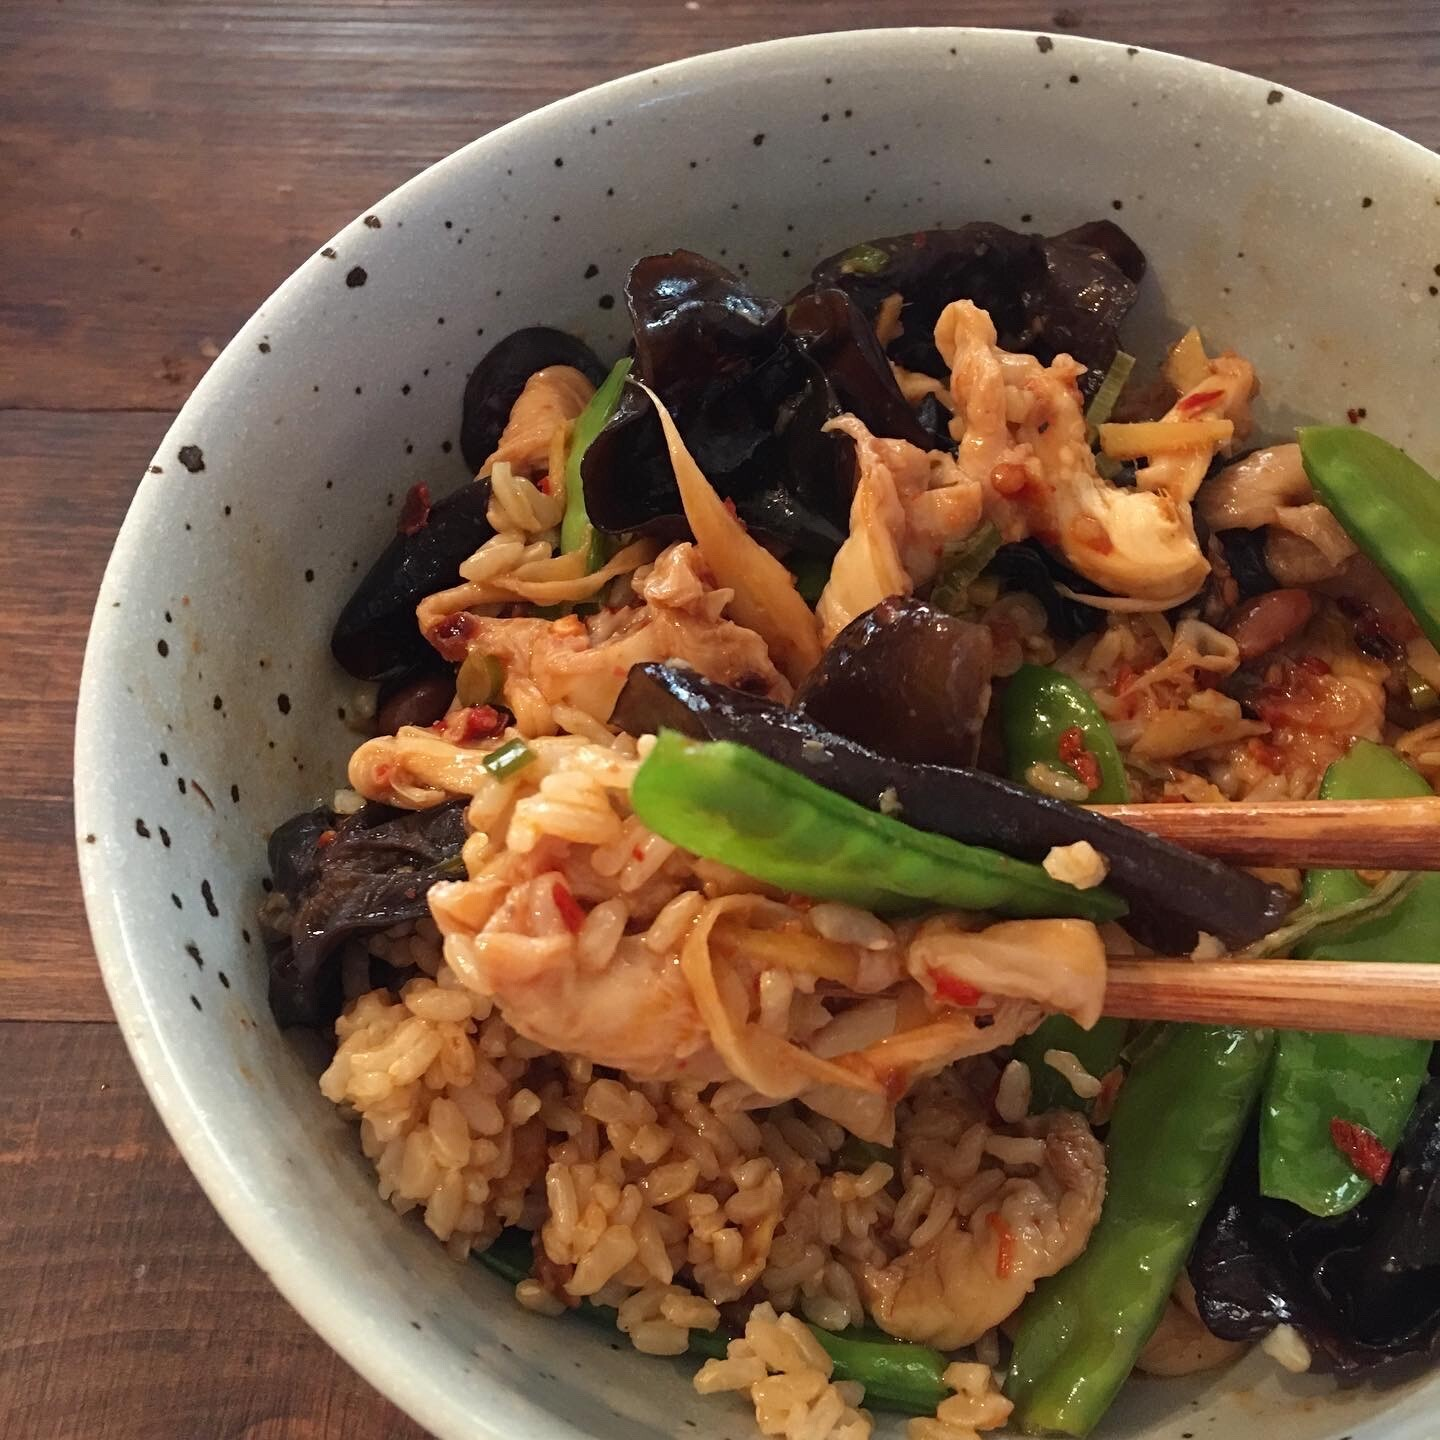 Poh's Oyster Mushroom & Snowpea Stir Fry with Chilli Bean Sauce